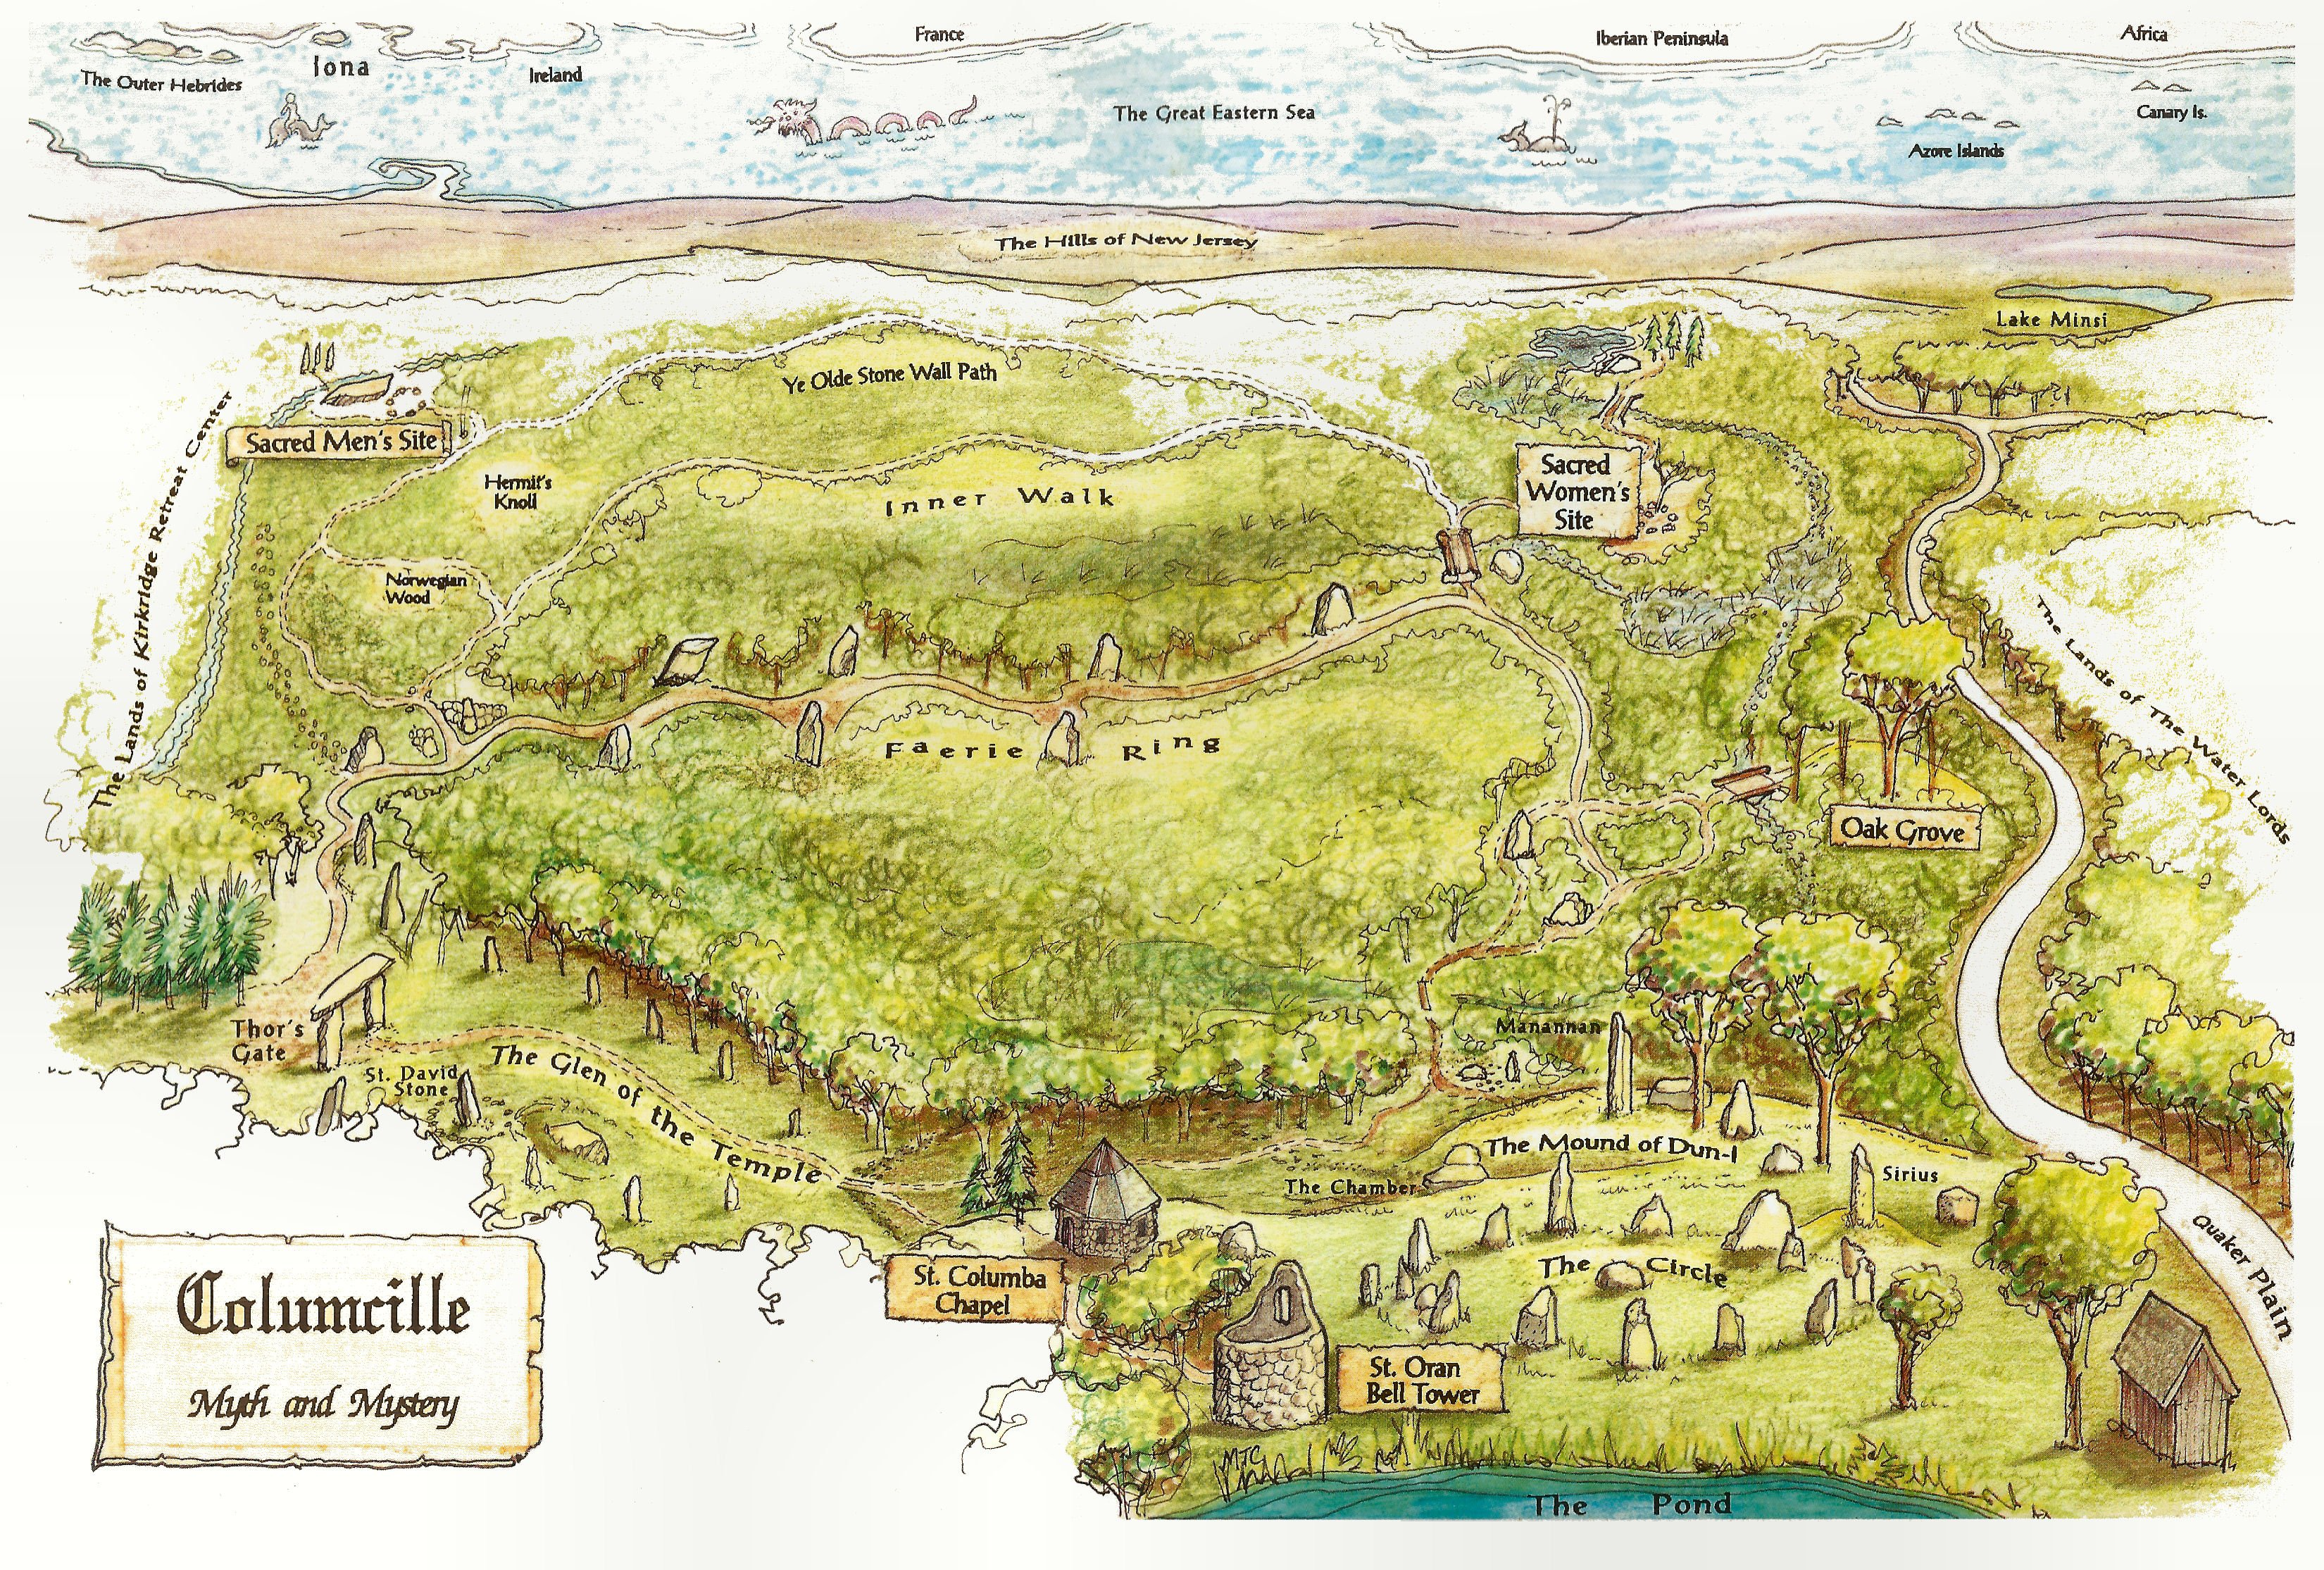 Colored map of Columcille Megalith Park